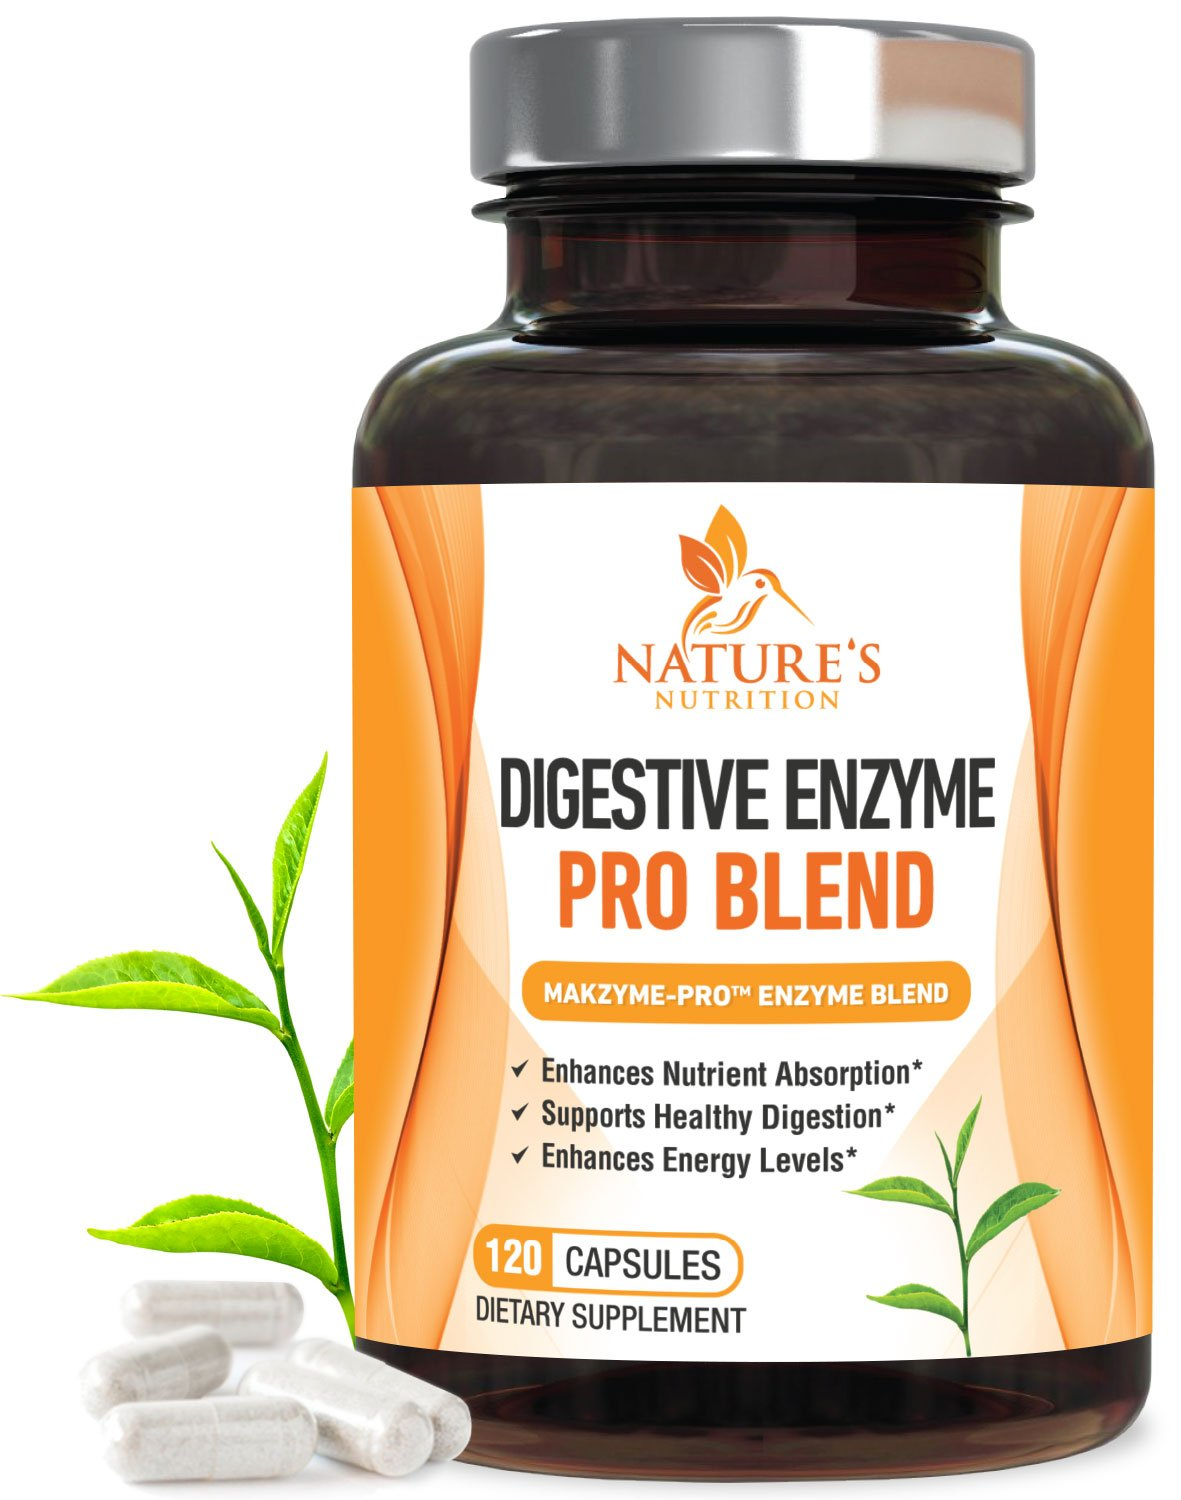 Digestive Enzymes Plus Prebiotics & Probiotics 1000mg - Natural Pancreatic Support Supplement for Better Digestion - Gas, Constipation & Bloating Relief by Nature's Nutrition - 120 Capsules by Nature's Nutrition